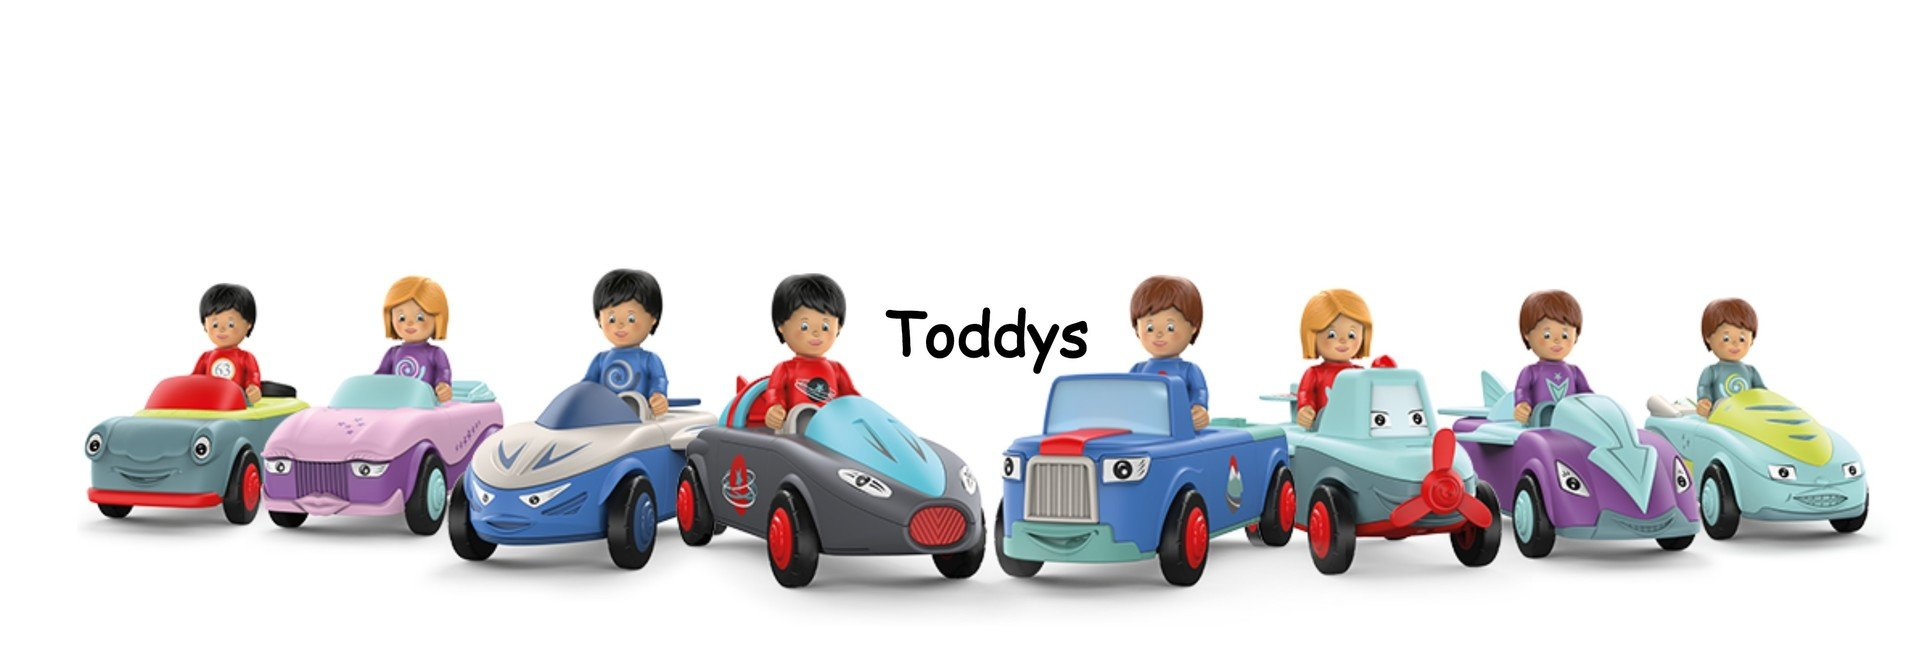 TODDYS-CARS-FOR-KIDS